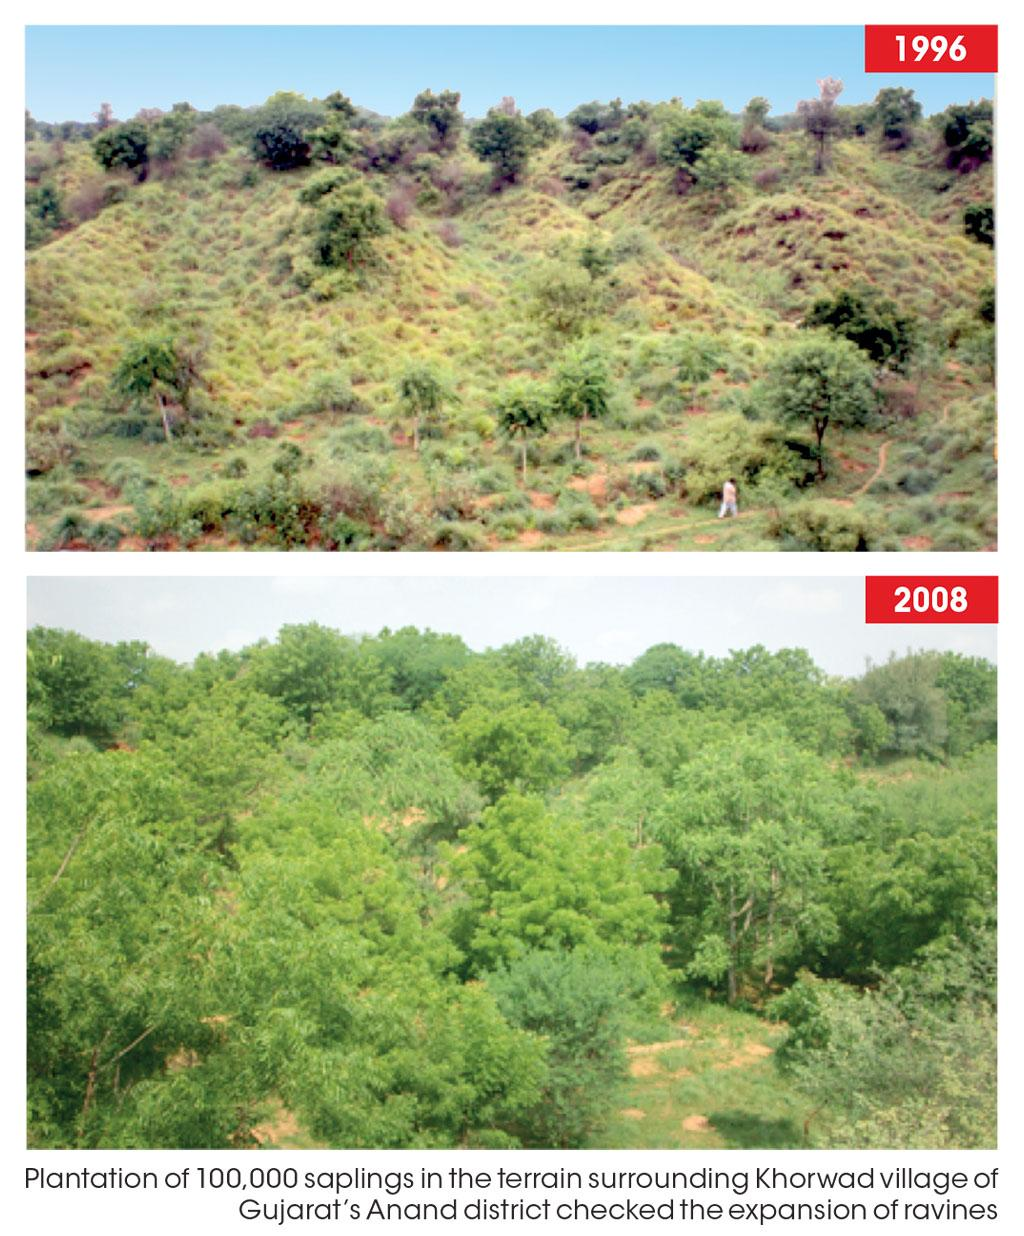 Plantation of 100,000 saplings in the terrain surrounding Khorwad village of 